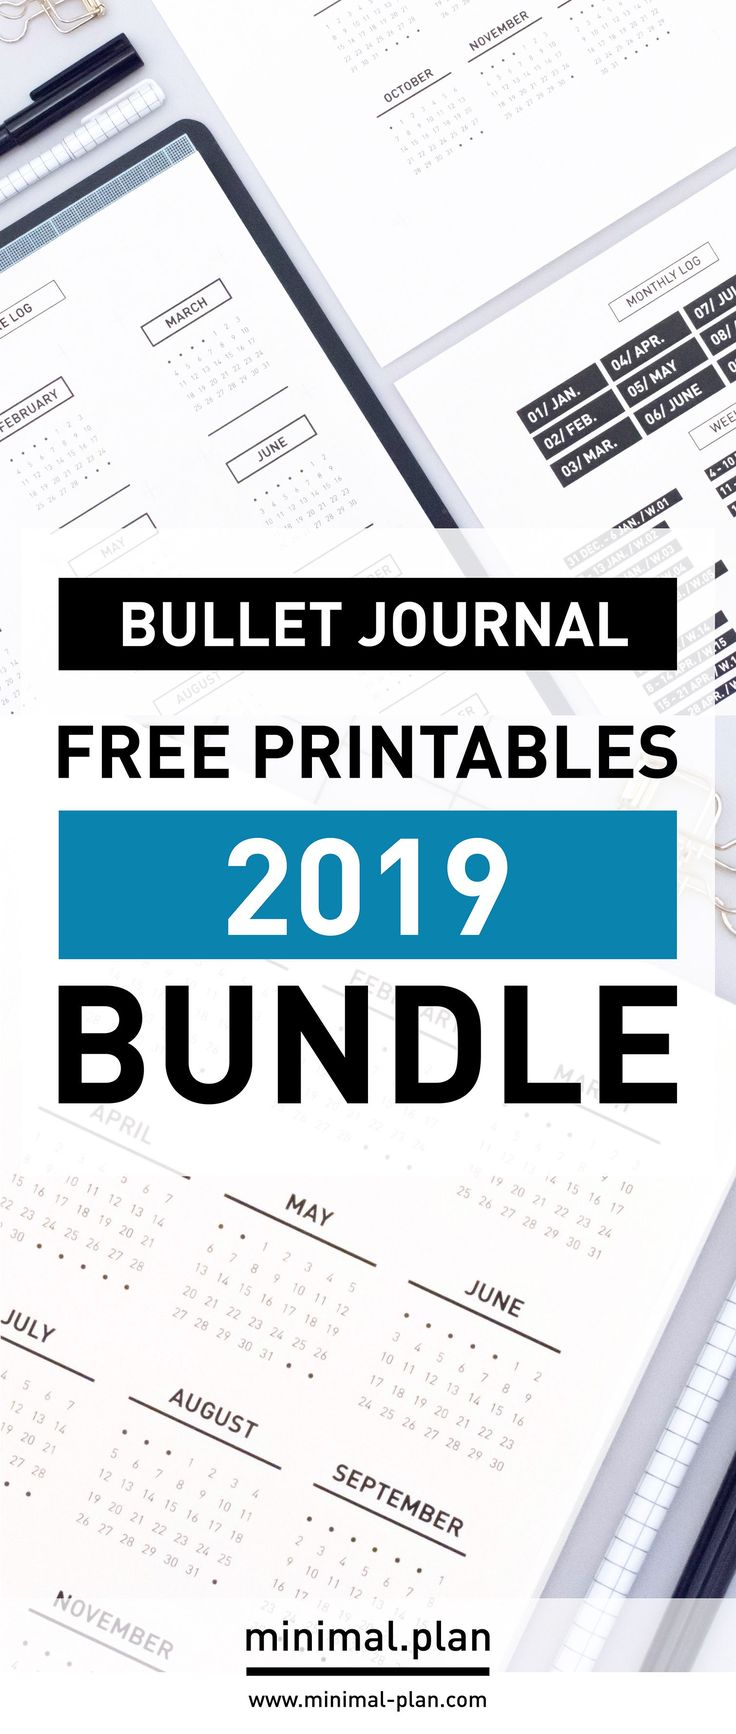 Set-up your bullet journal in no time for 2019 with this free printables bundle …